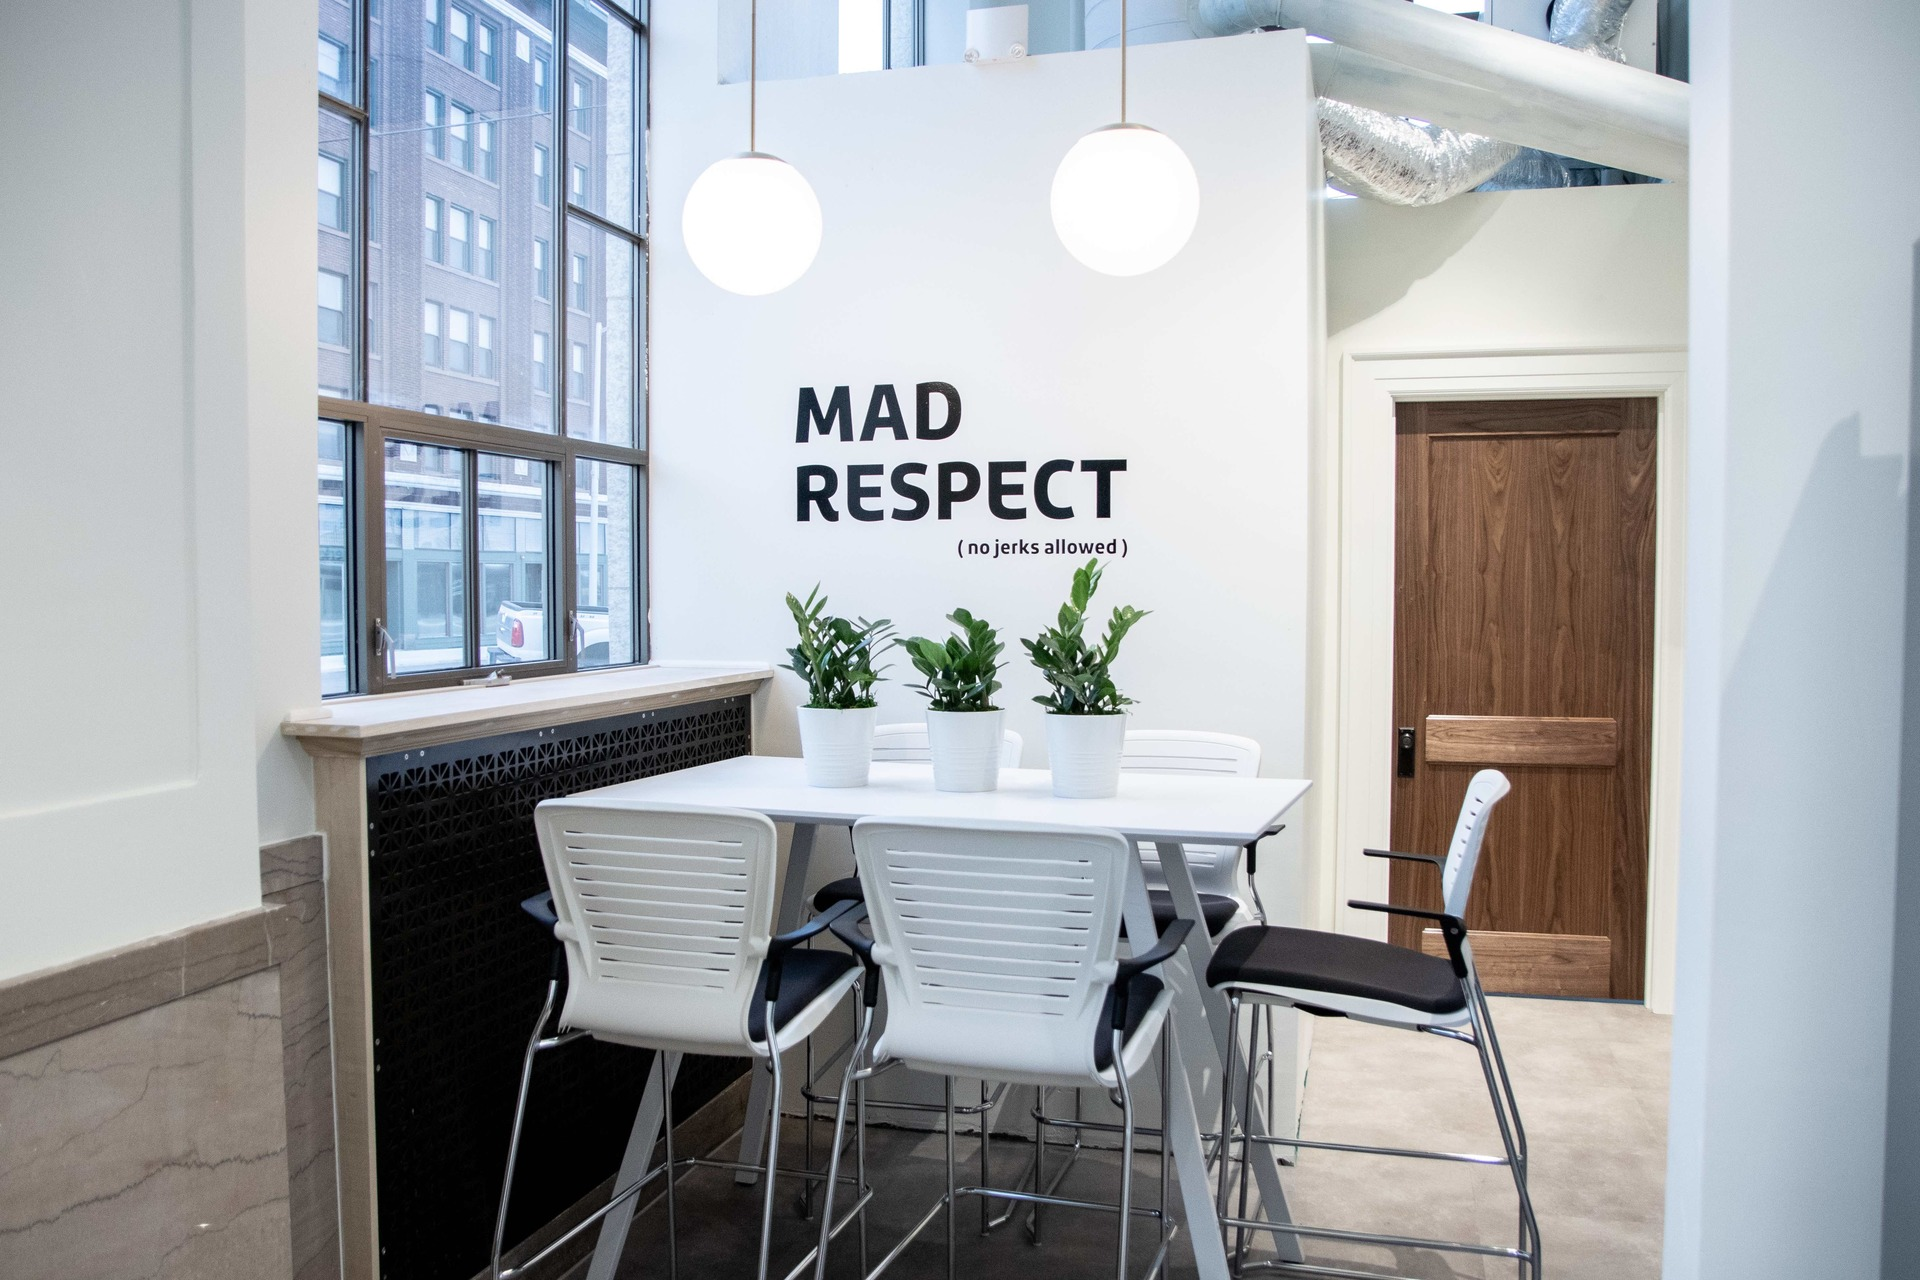 Mortarr's core values and beloved quotes can be found throughout their bright new space.